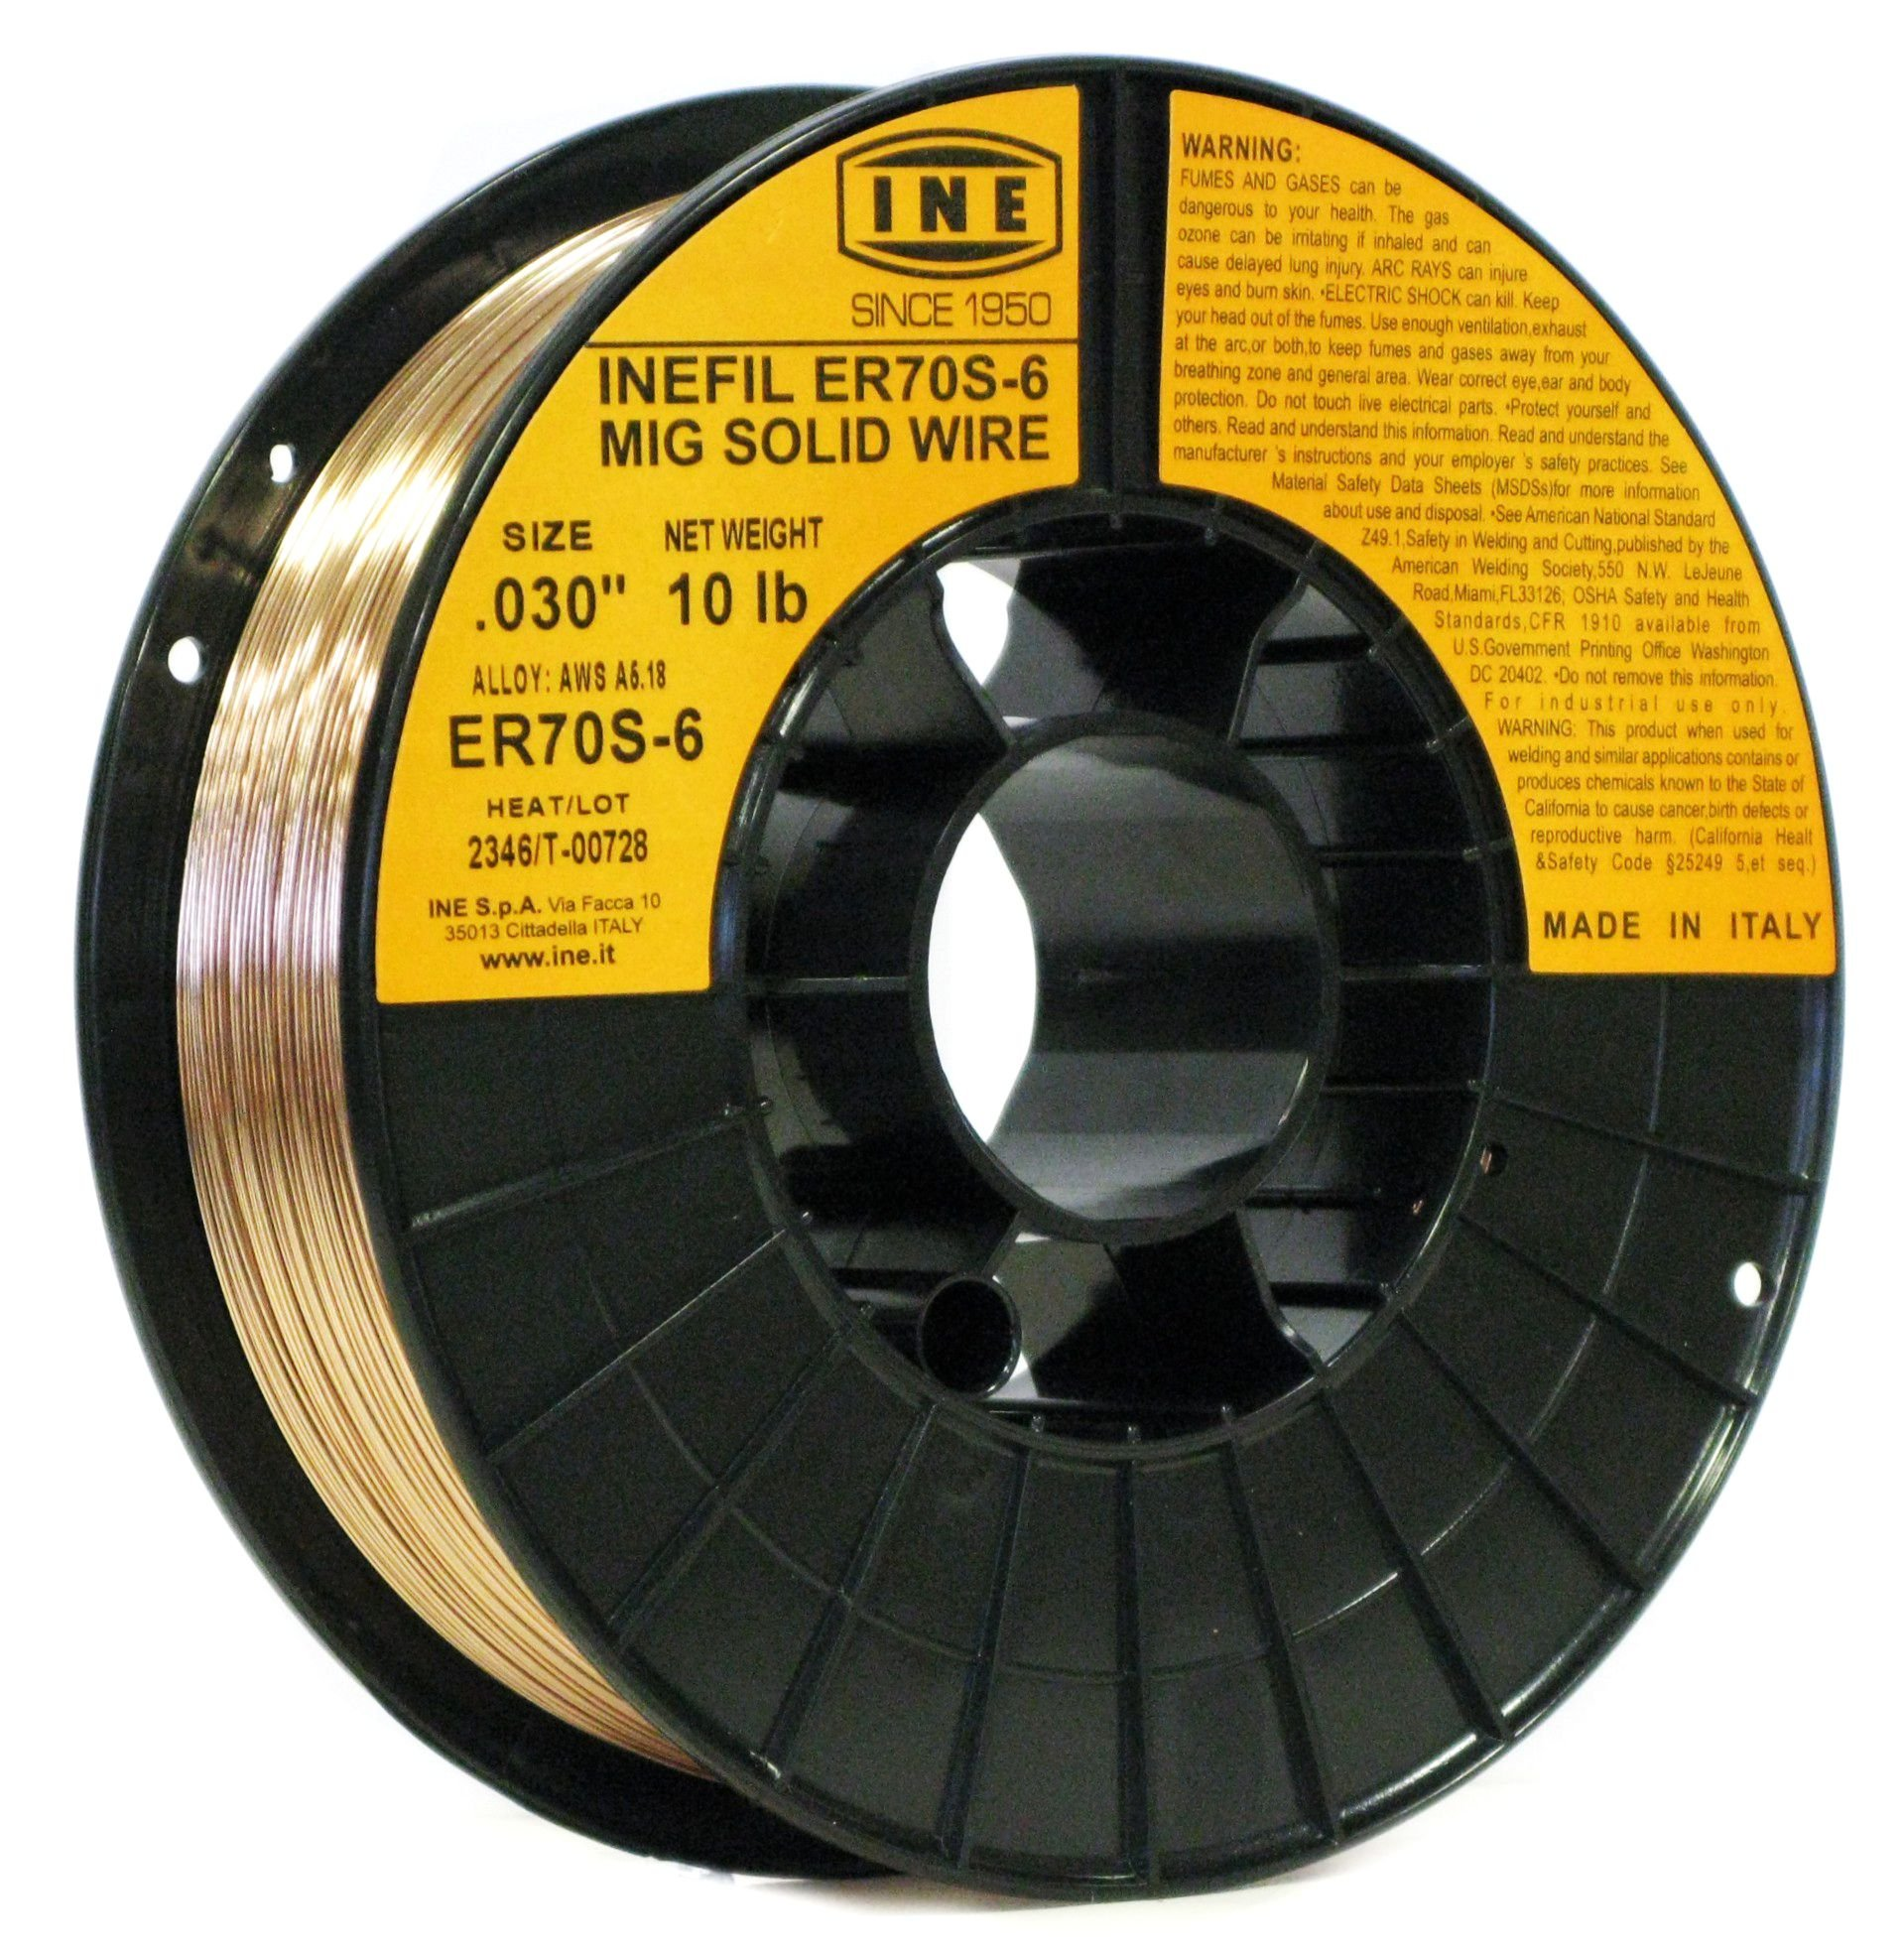 INEFIL ER70S-6 .030-Inch on 10-PoundSpool Carbon Steel Mig Solid Welding Wire by INE USA Since 1950